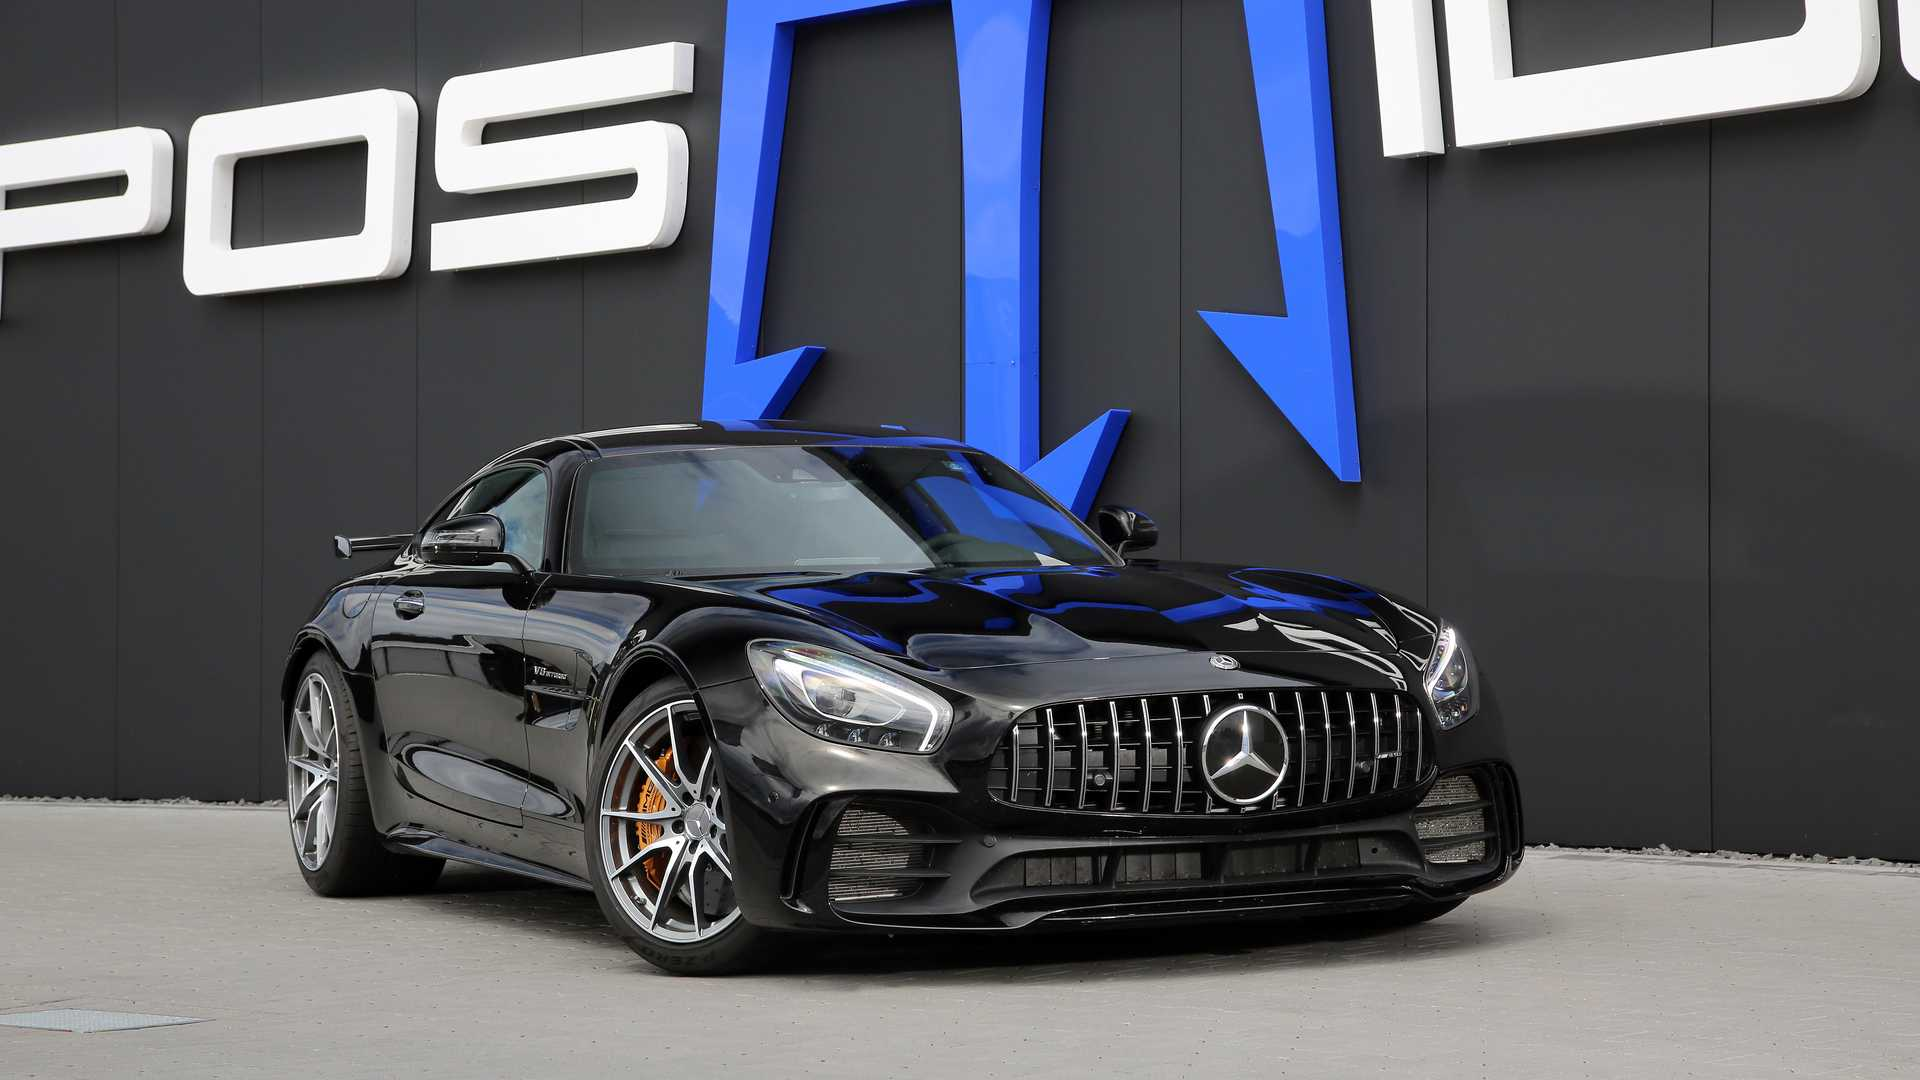 Mercedes-AMG GT R With 880 HP: A Tuner's Black Series